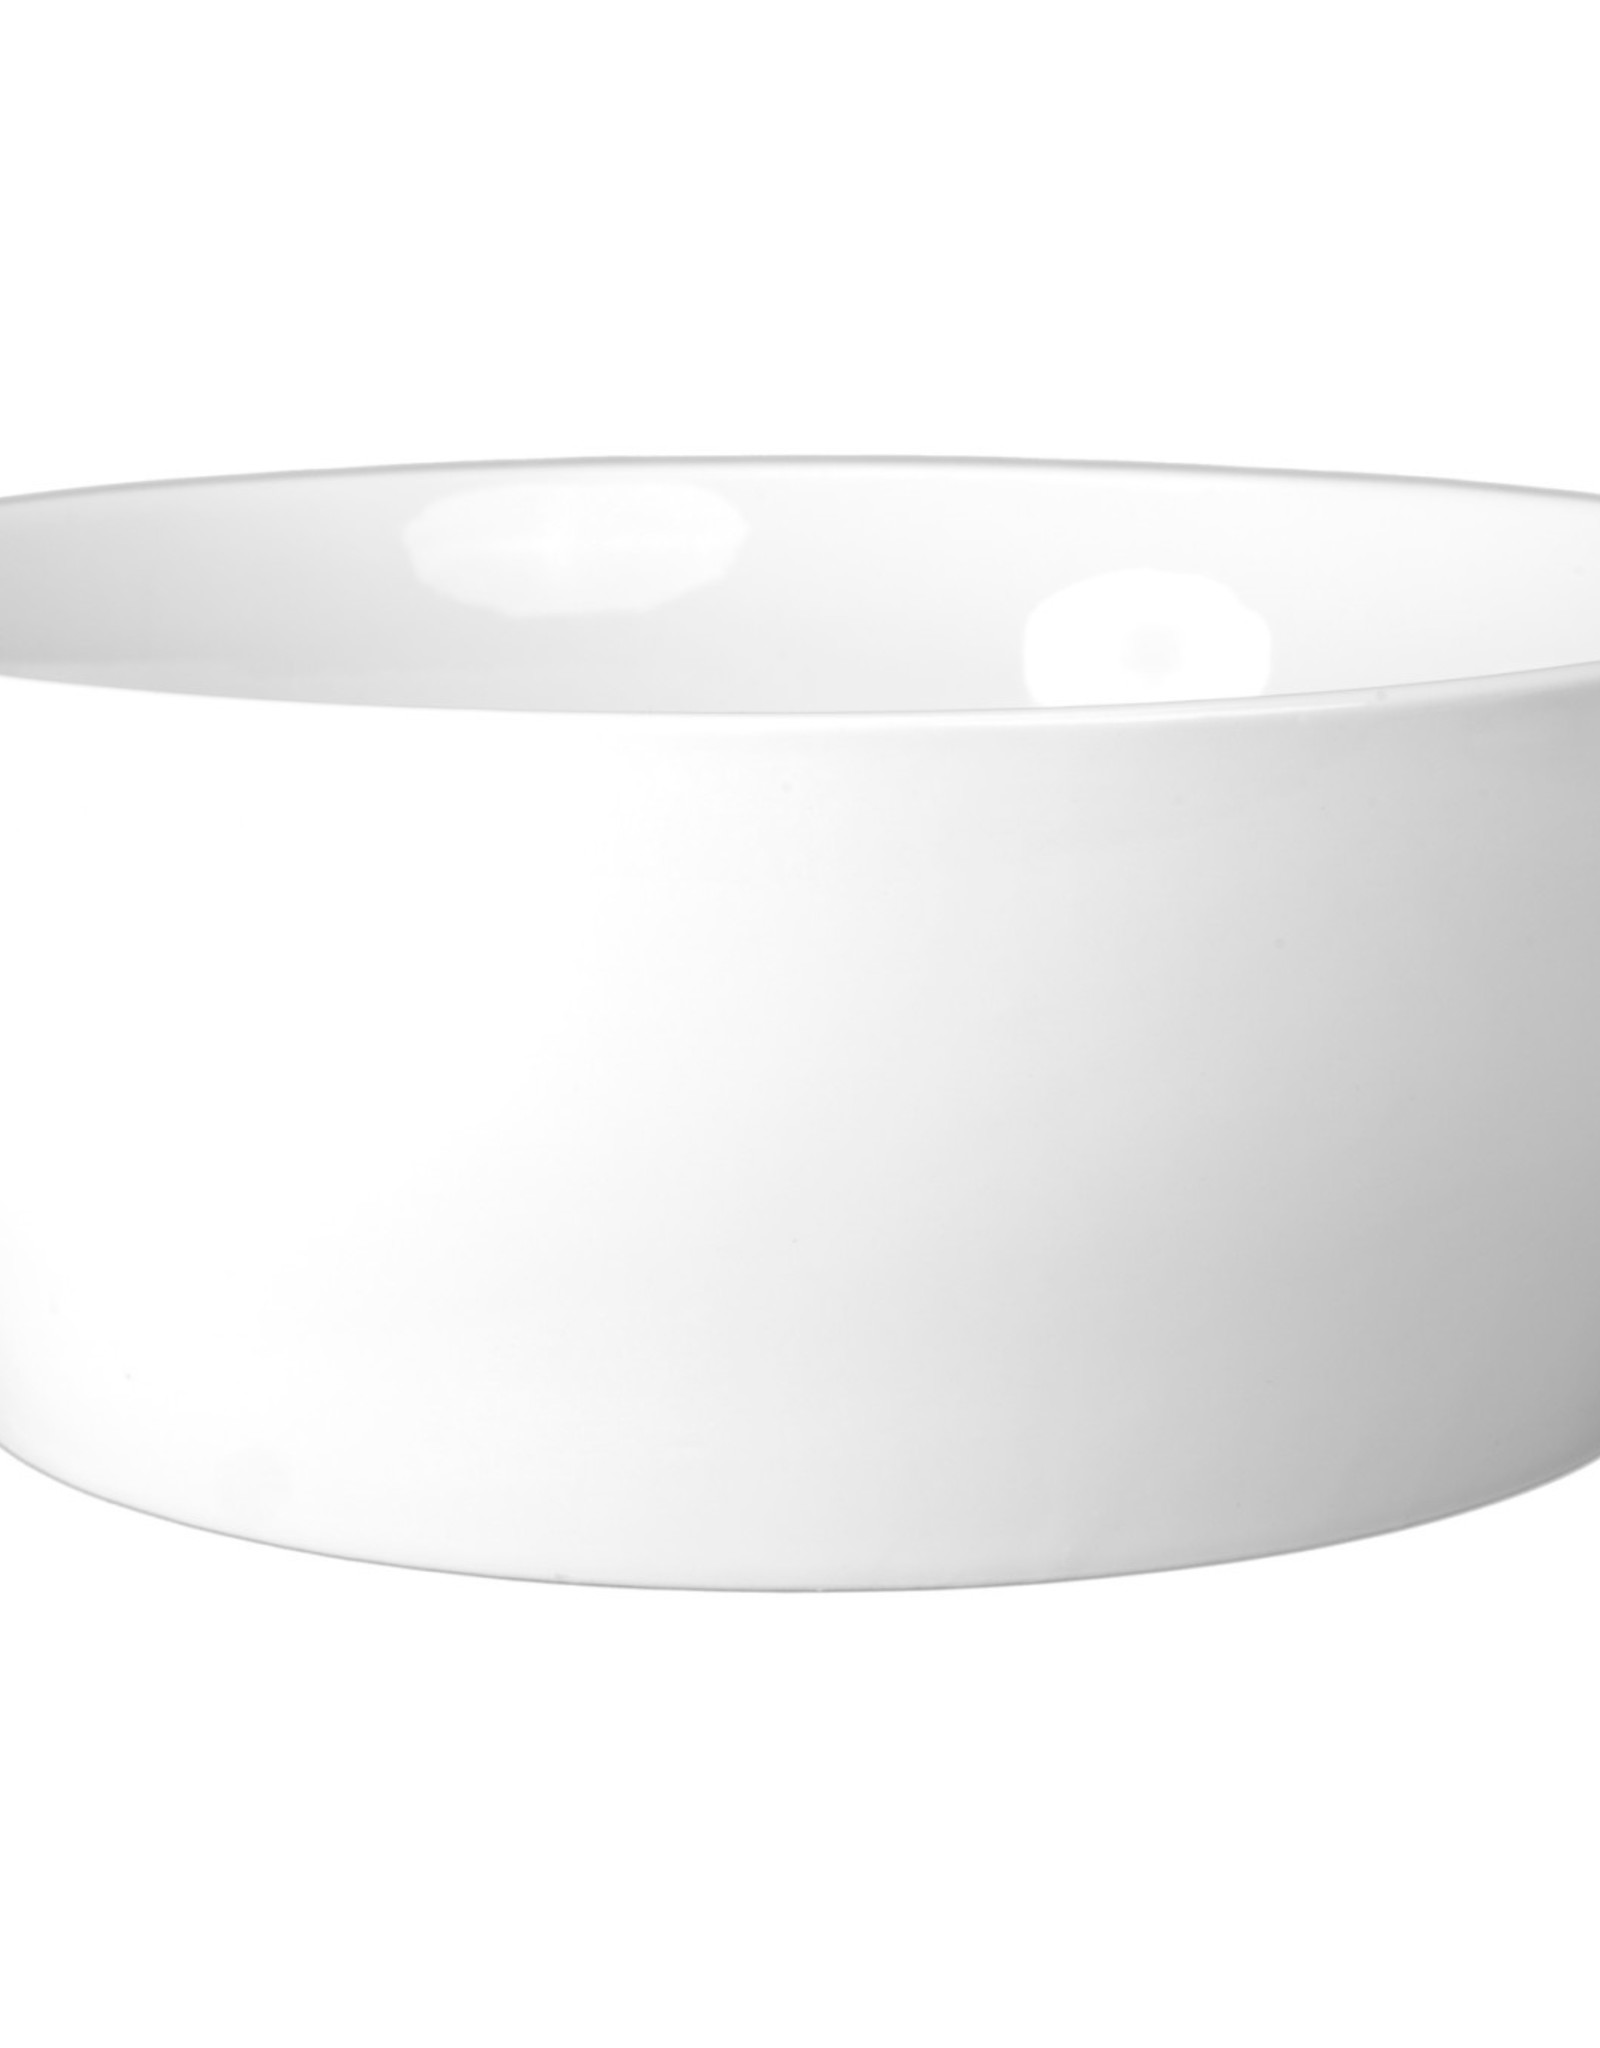 BOWL EVERYDAY STRAIGHT SIDE 9.25 INCH 2.5QT